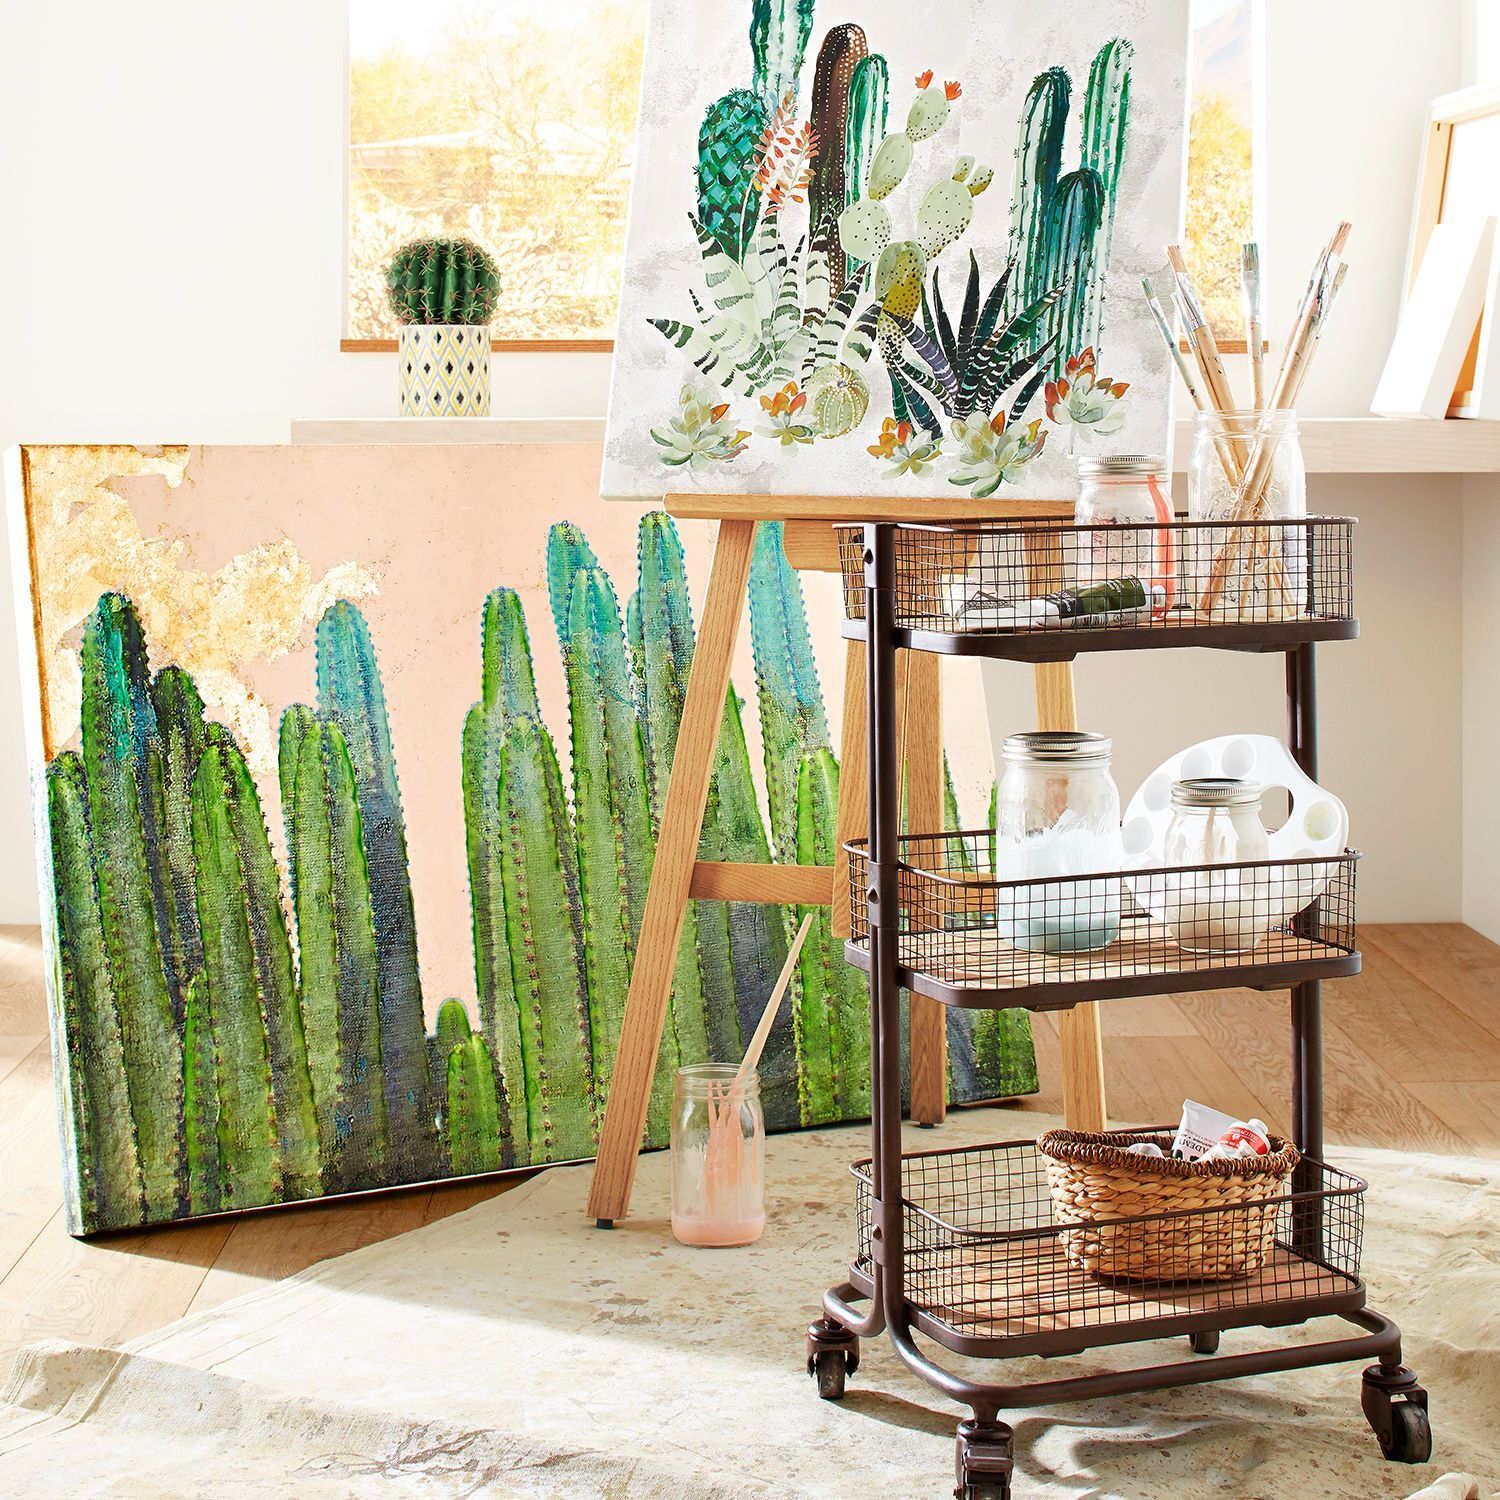 Desert Cactus Wall Art Pier 1 Imports 89 Clearance Nature Canvas Painting Cactus Wall Art Unique Wall Art